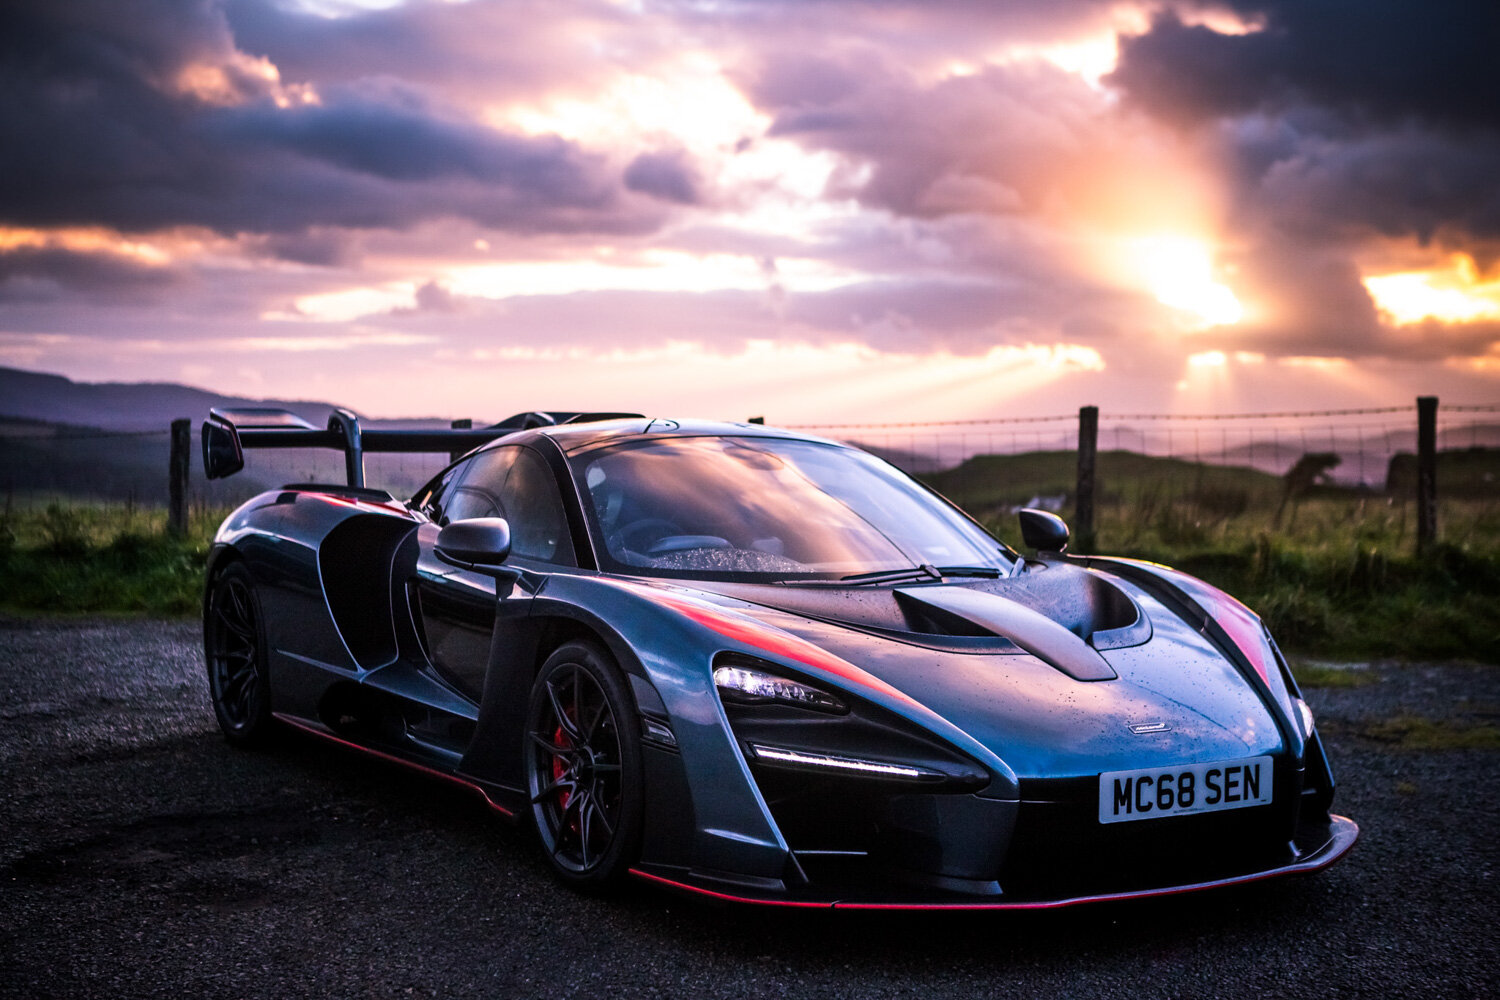 drone_filming_aerial_imagery_north_wales_drone_club_gt_mclaren_senna-2.jpg